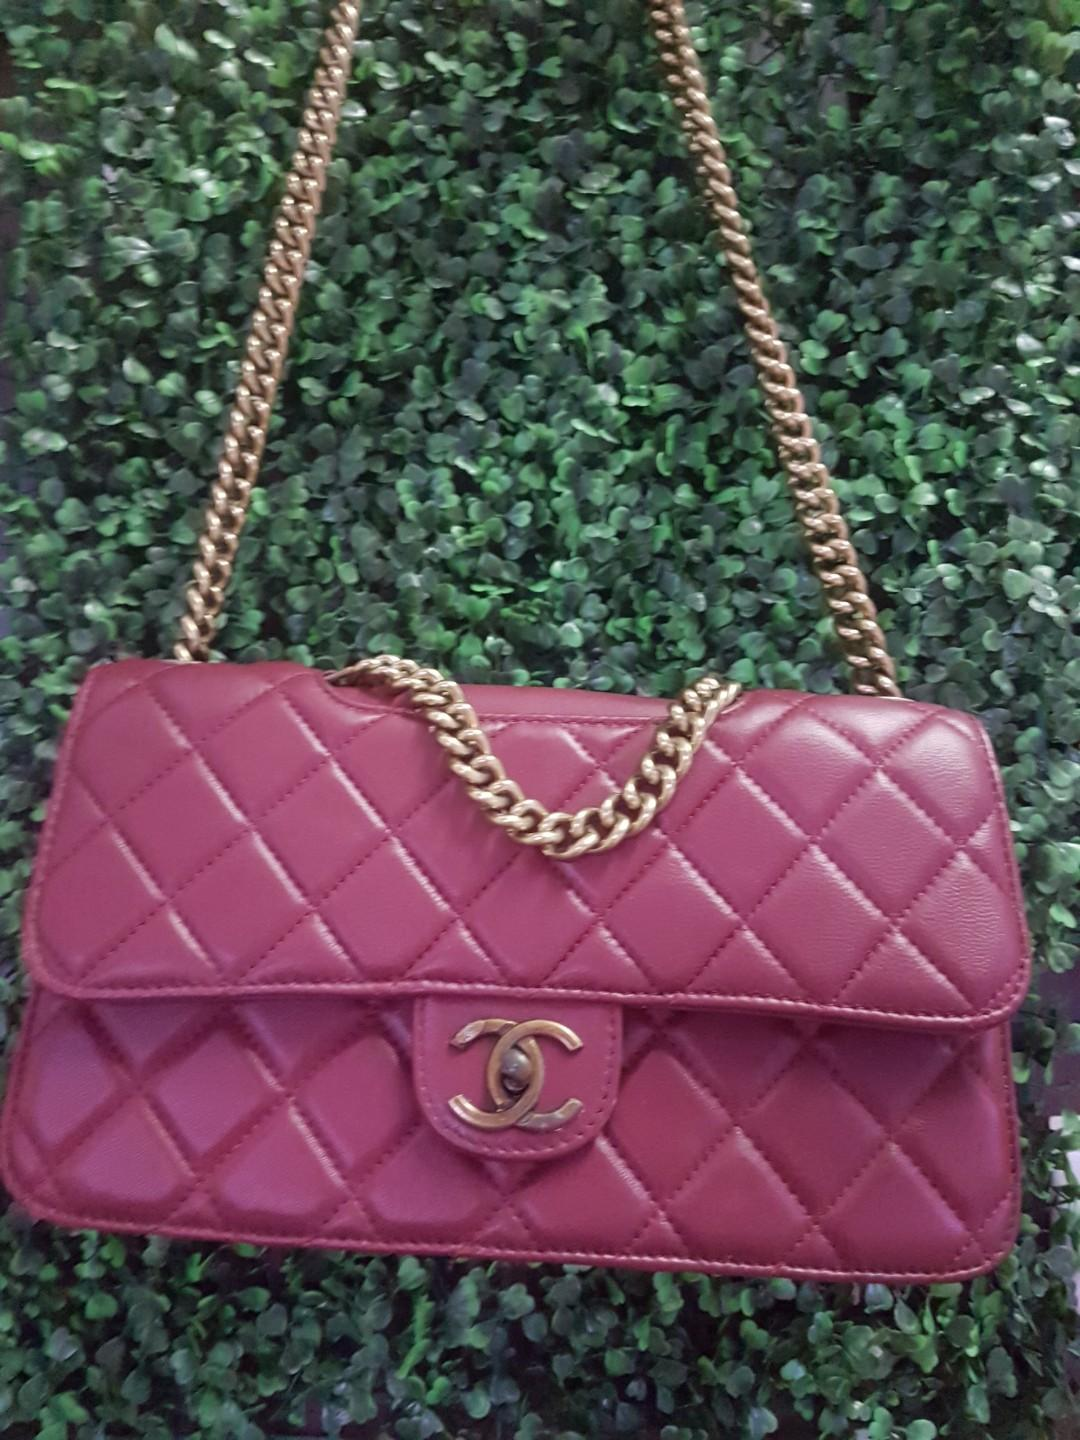 New Chanel Le Boy Maroon Leather 2.55 bag 2 way flap shoulder